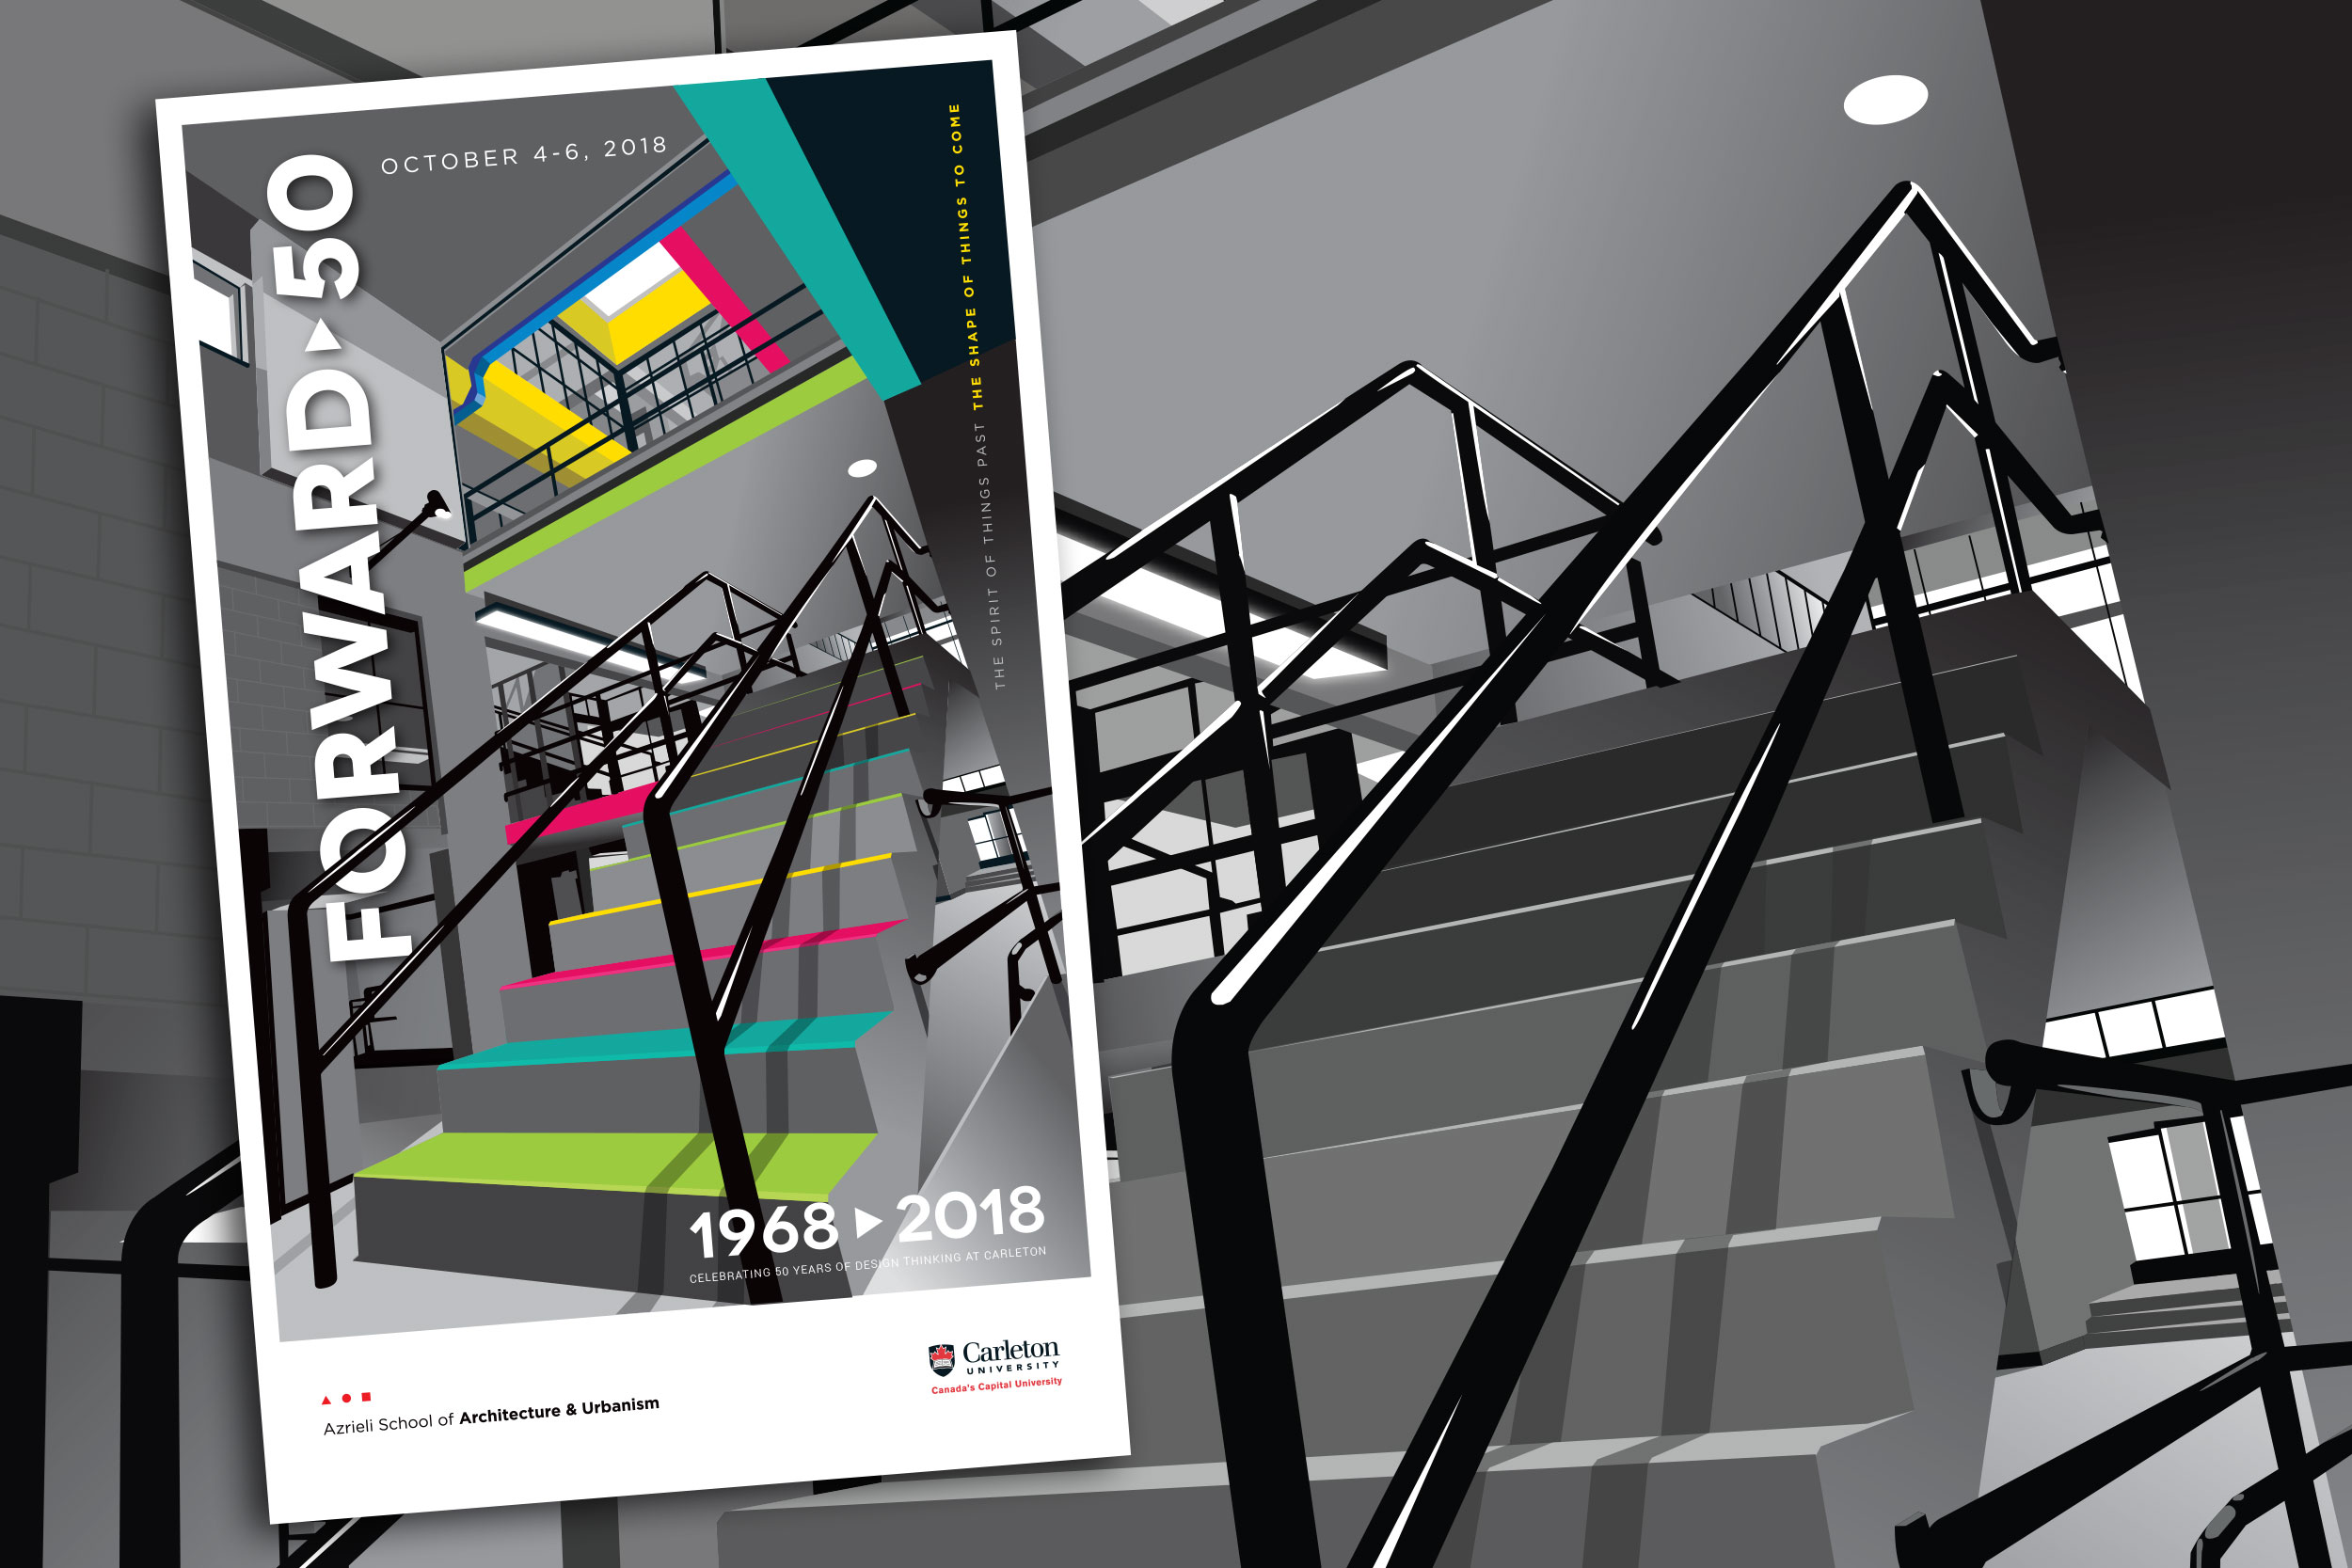 A scalable vector illustration of the staircase was created and overlaid with a vibrant palette to evoke the ascent to the upper creative spaces. This would become the central theme of the event vernacular.